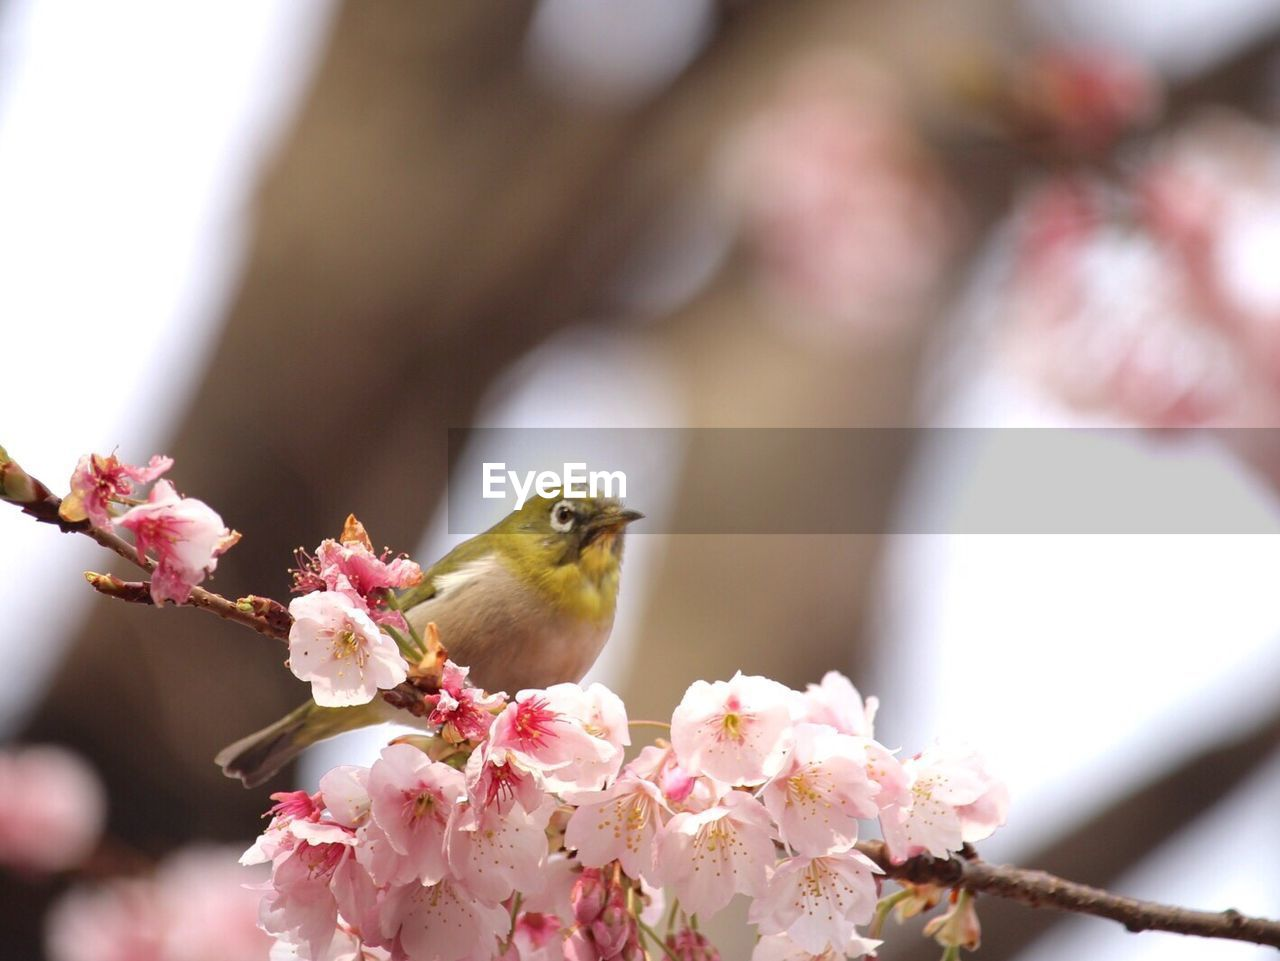 one animal, flower, animals in the wild, animal themes, day, bird, nature, close-up, fragility, outdoors, one person, growth, perching, beauty in nature, flower head, freshness